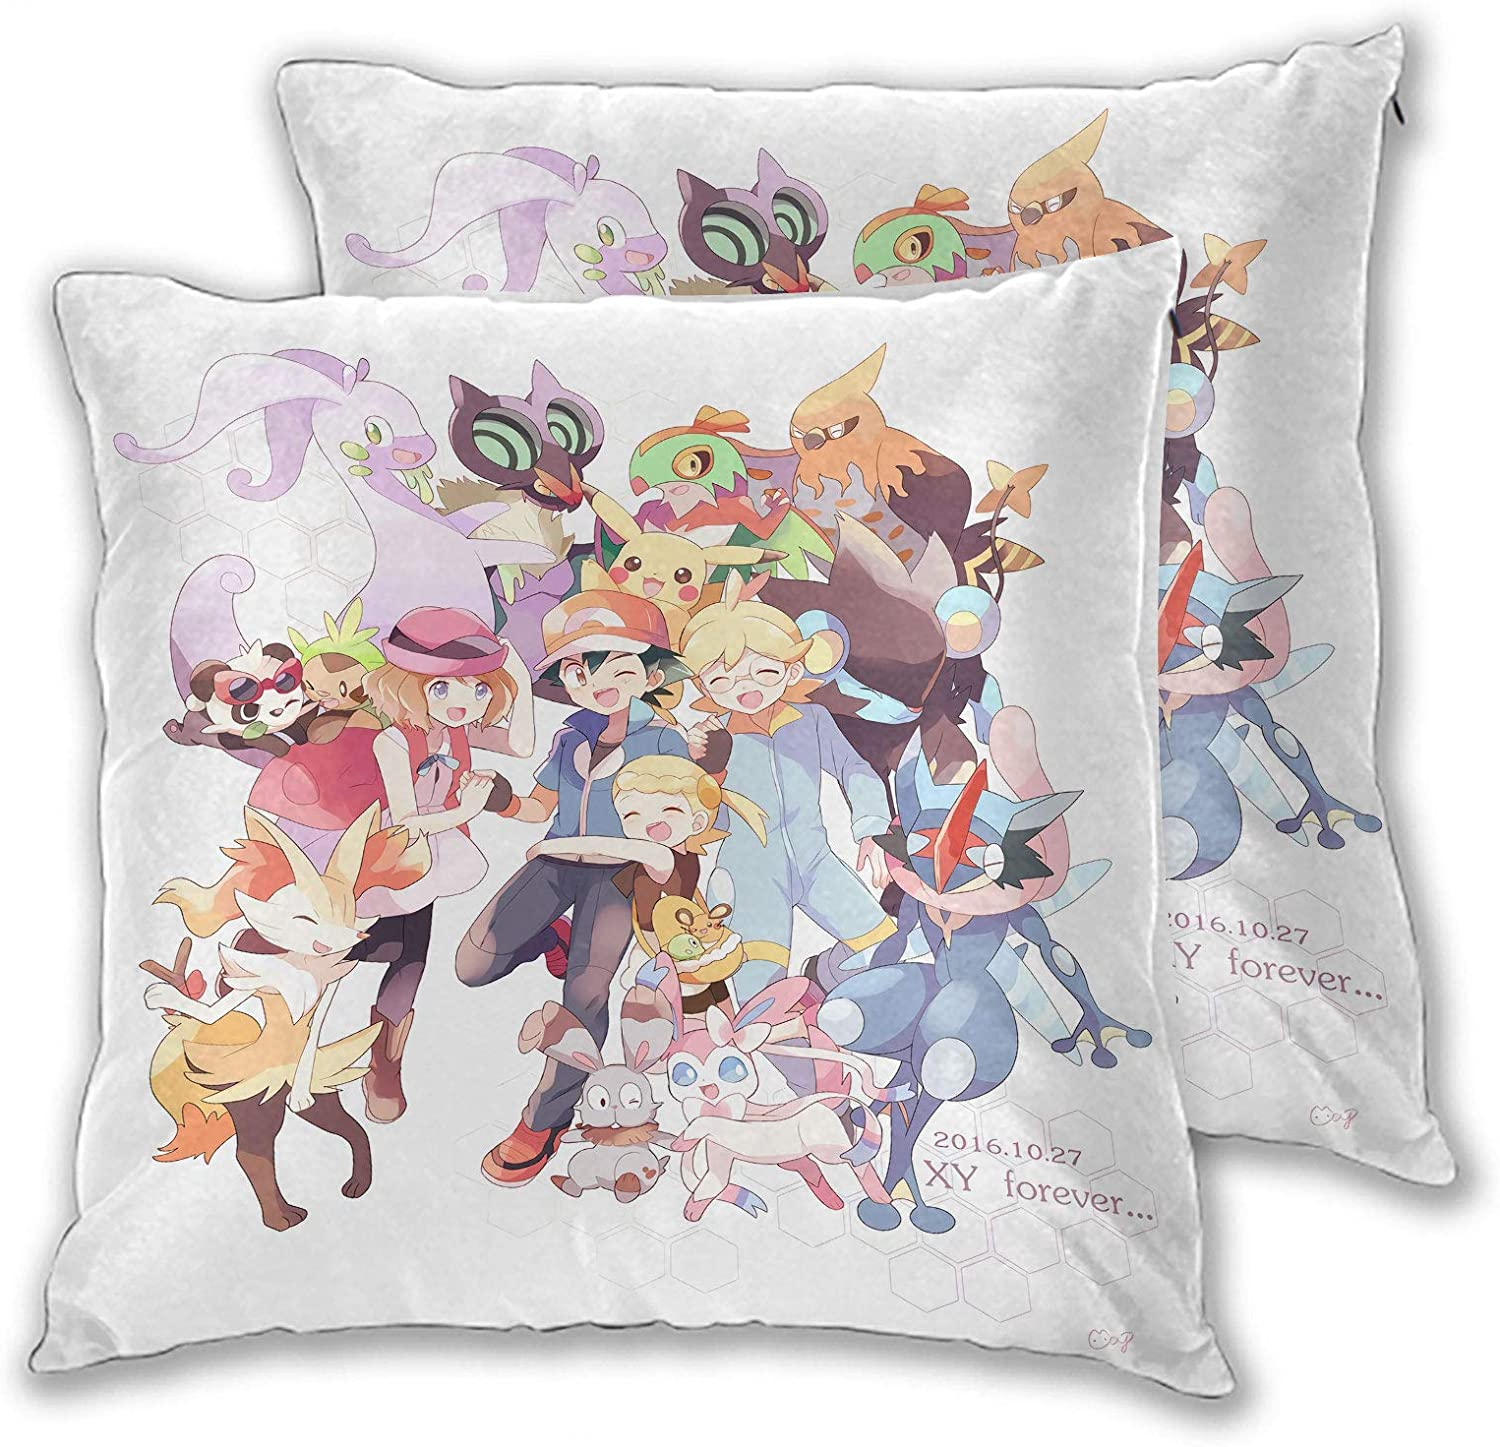 Anime Cushion Pillow of furniture Sofa Polyester 45x45cm for sofa bed